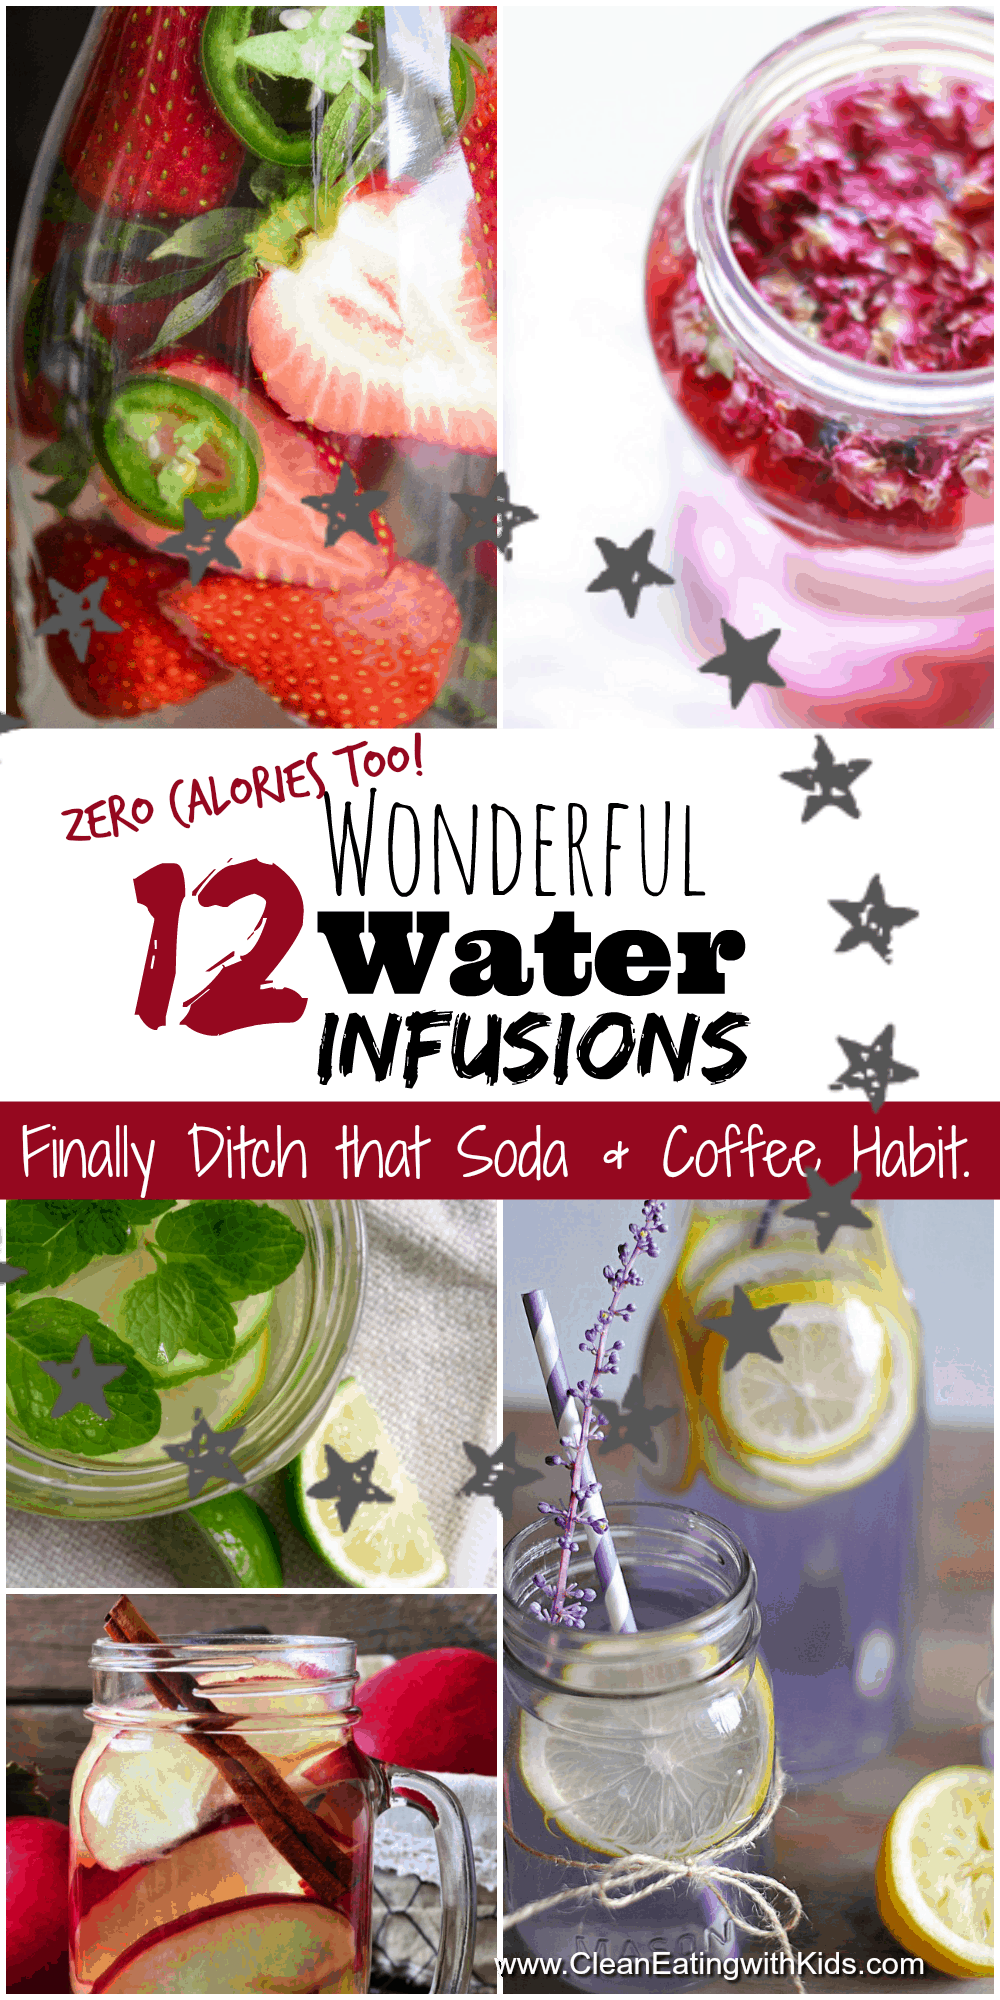 love these water infusion recipes. Real easy to make too.